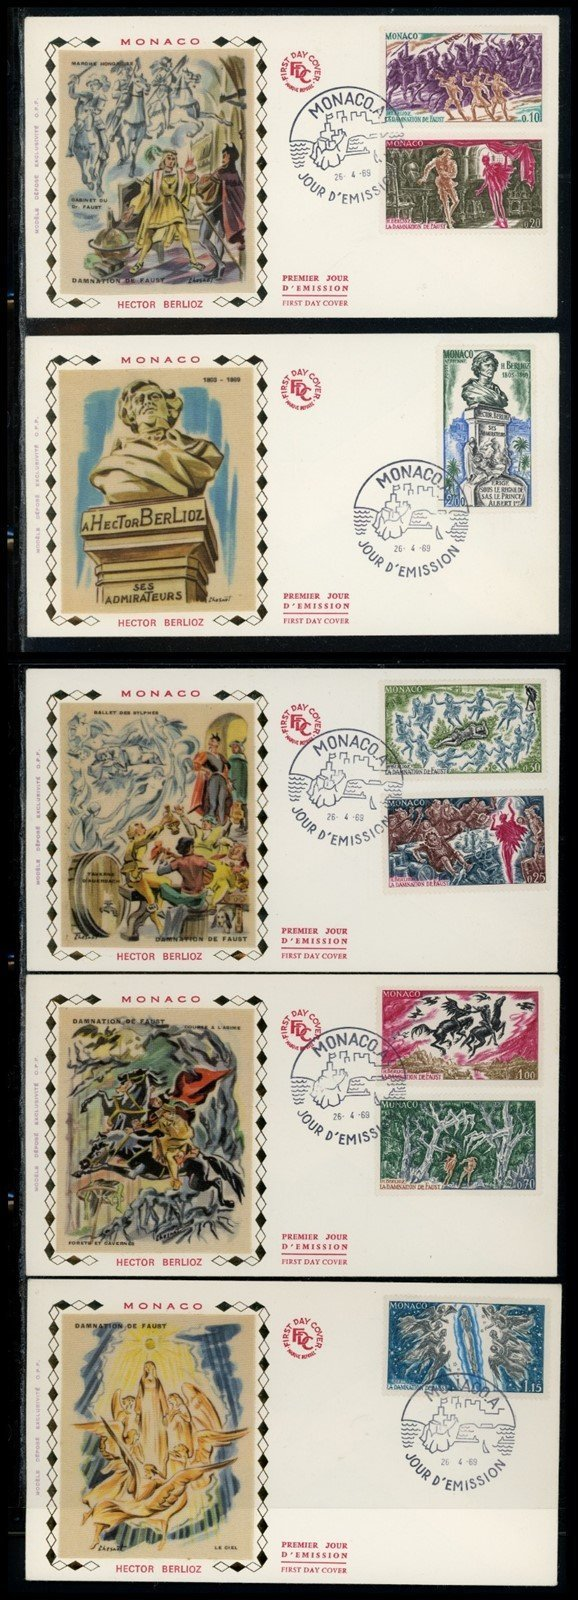 Monaco Scott #712//C75 FIRST DAY COVERS (5) Hector Berlioz COMPLETE SET $$